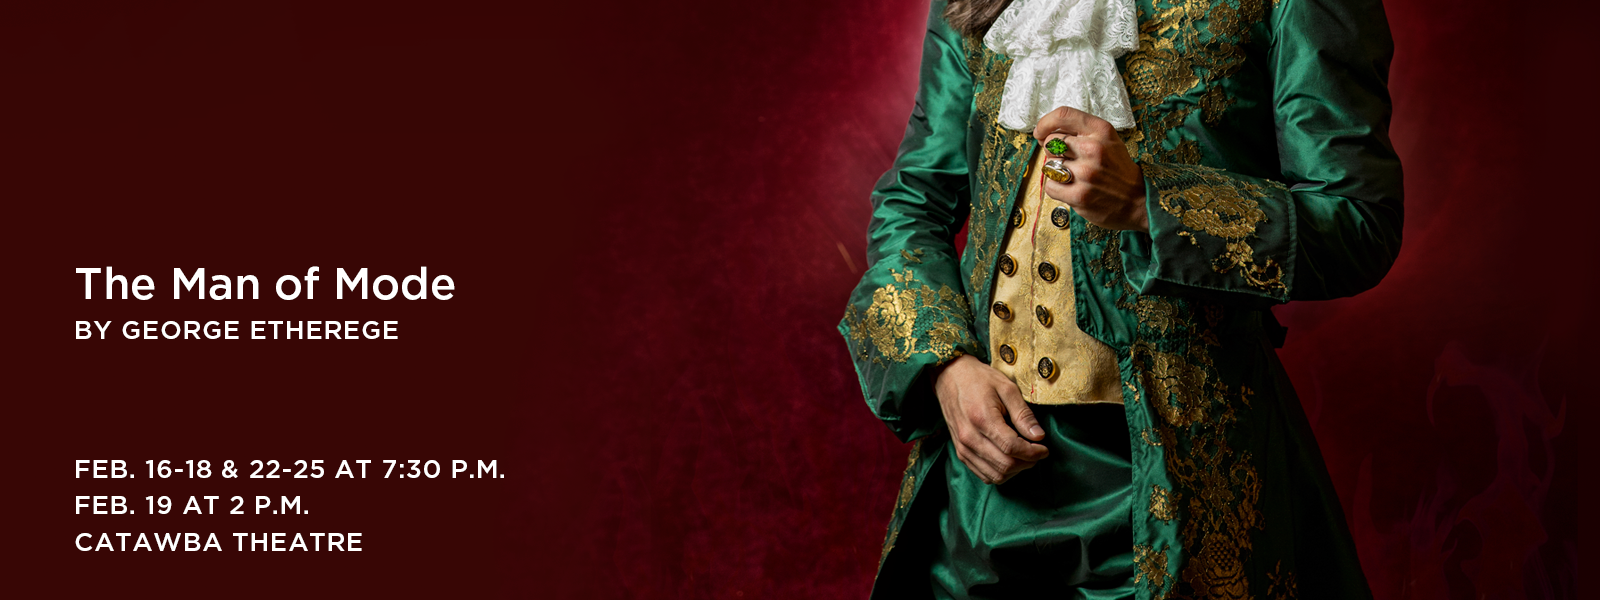 Romantic hijinks abound in this charming Restoration comedy. >> BUY TICKETS